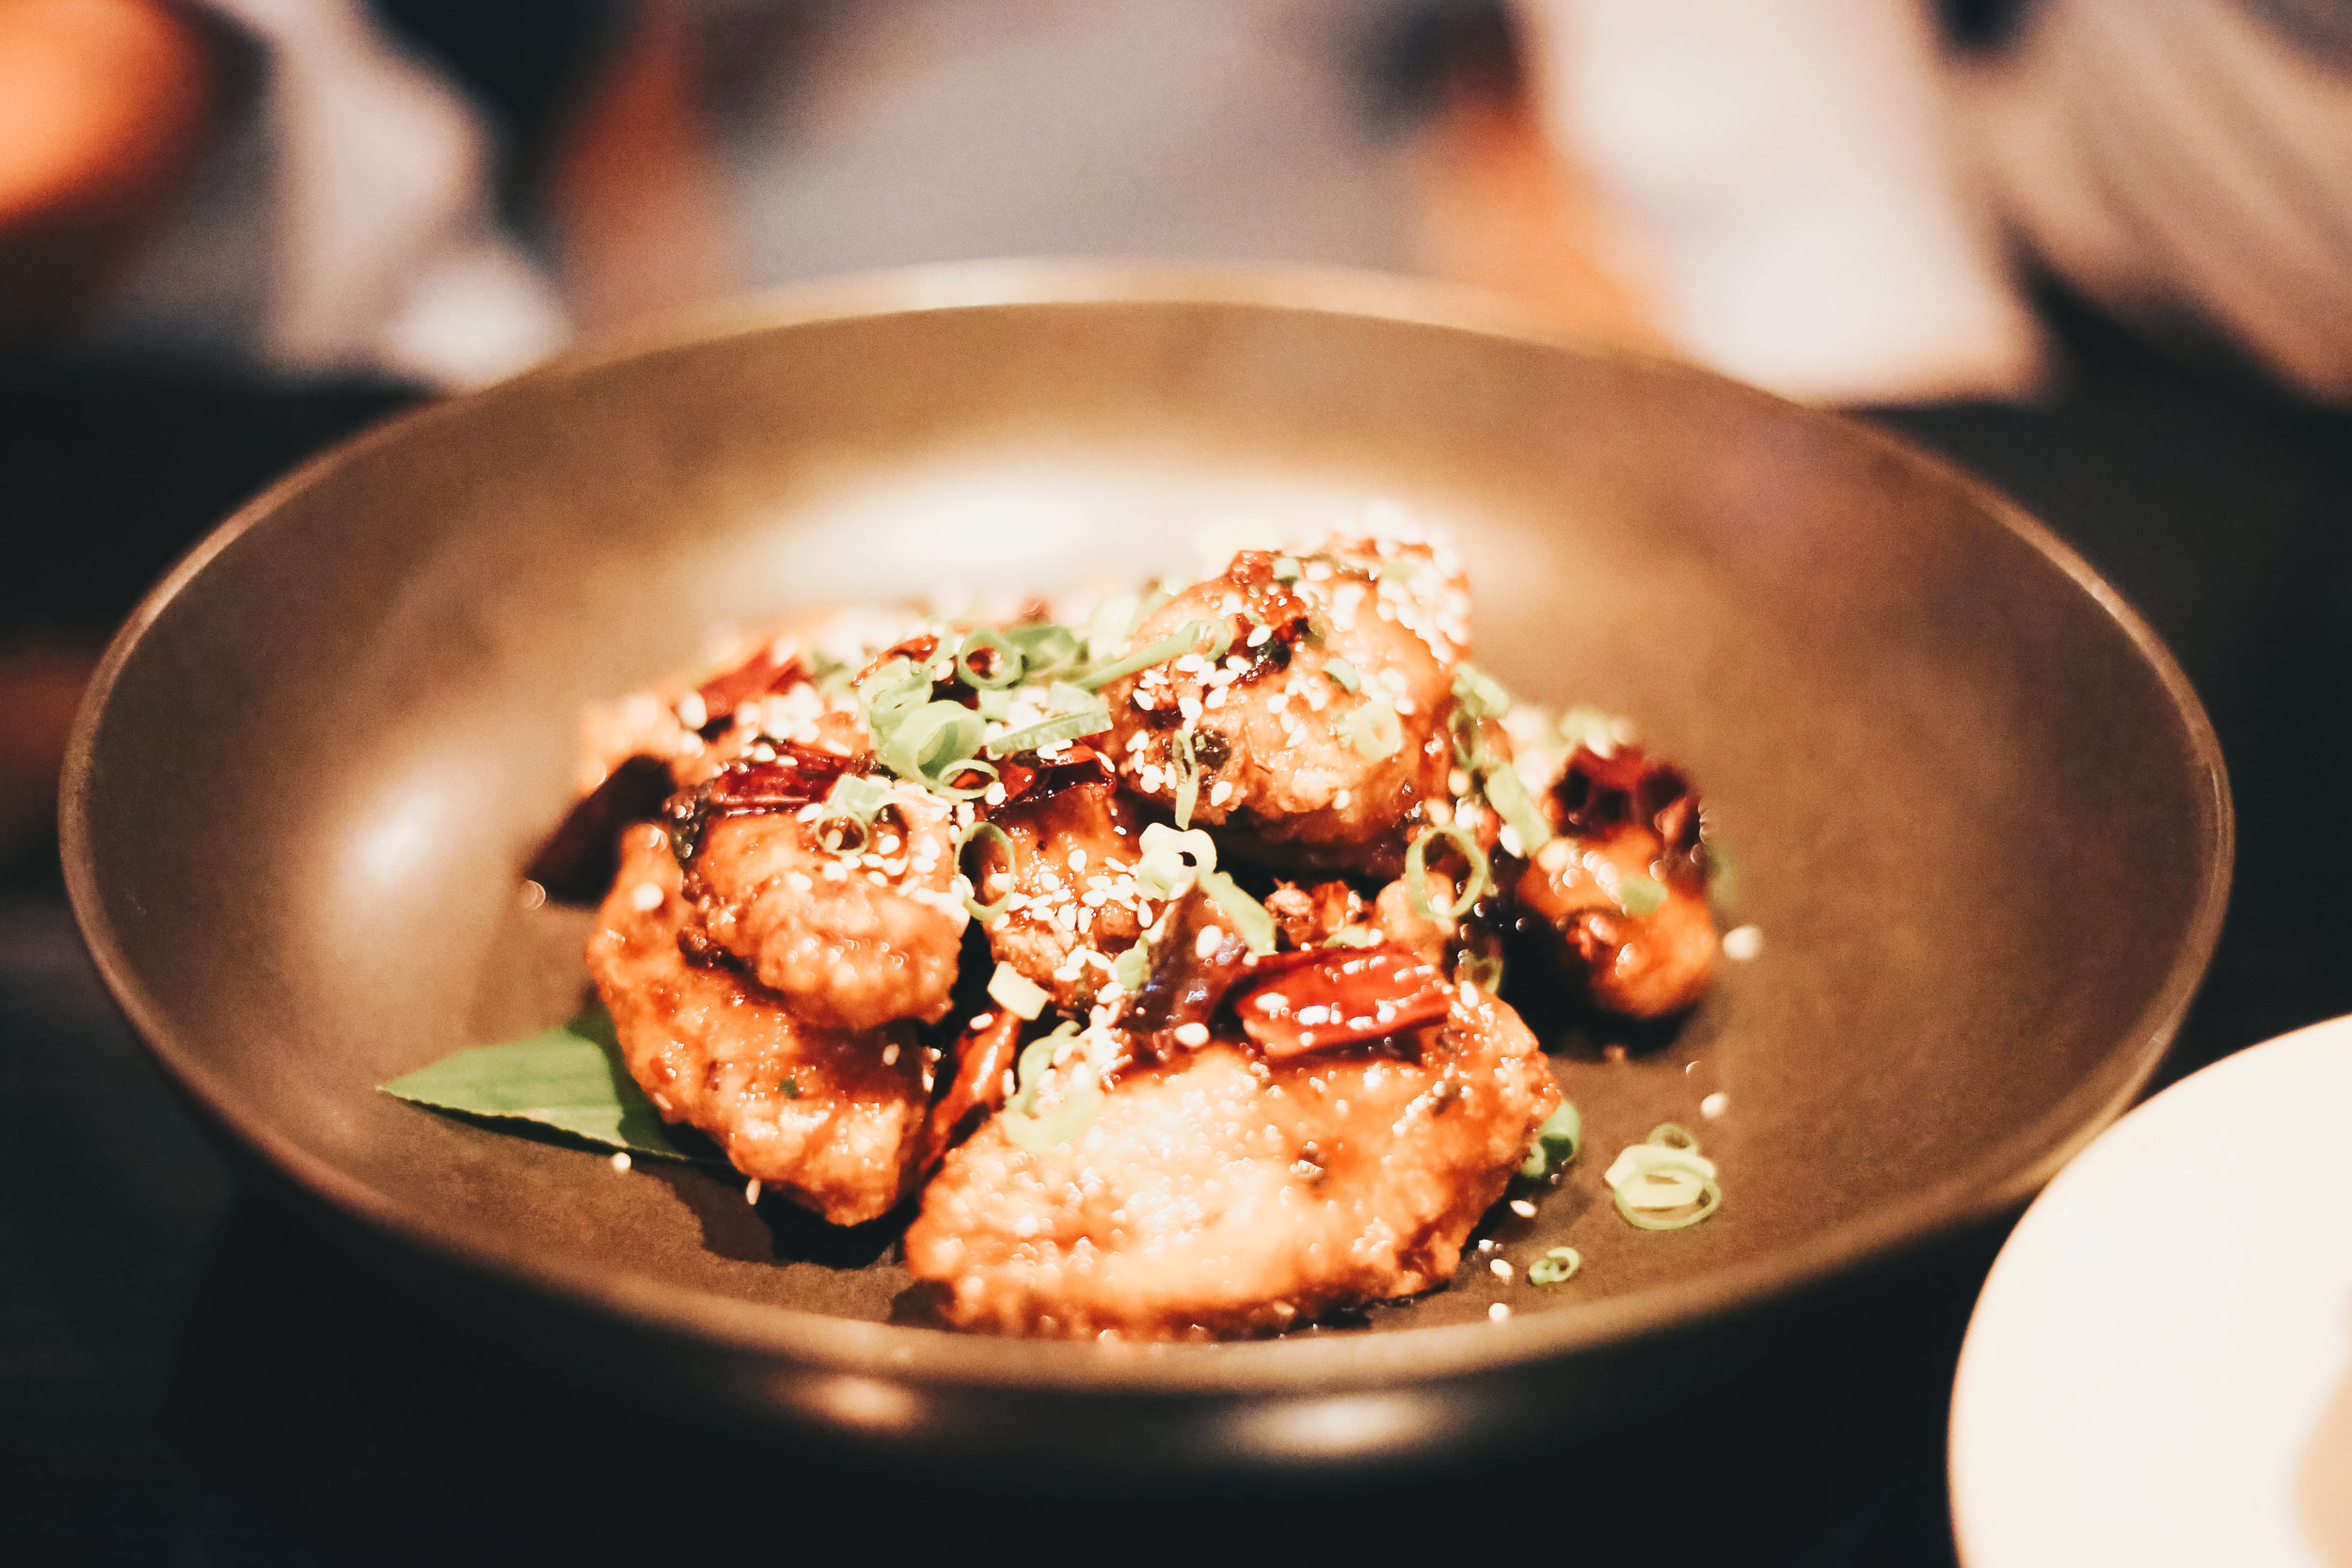 Sichuan style chilli chicken wings